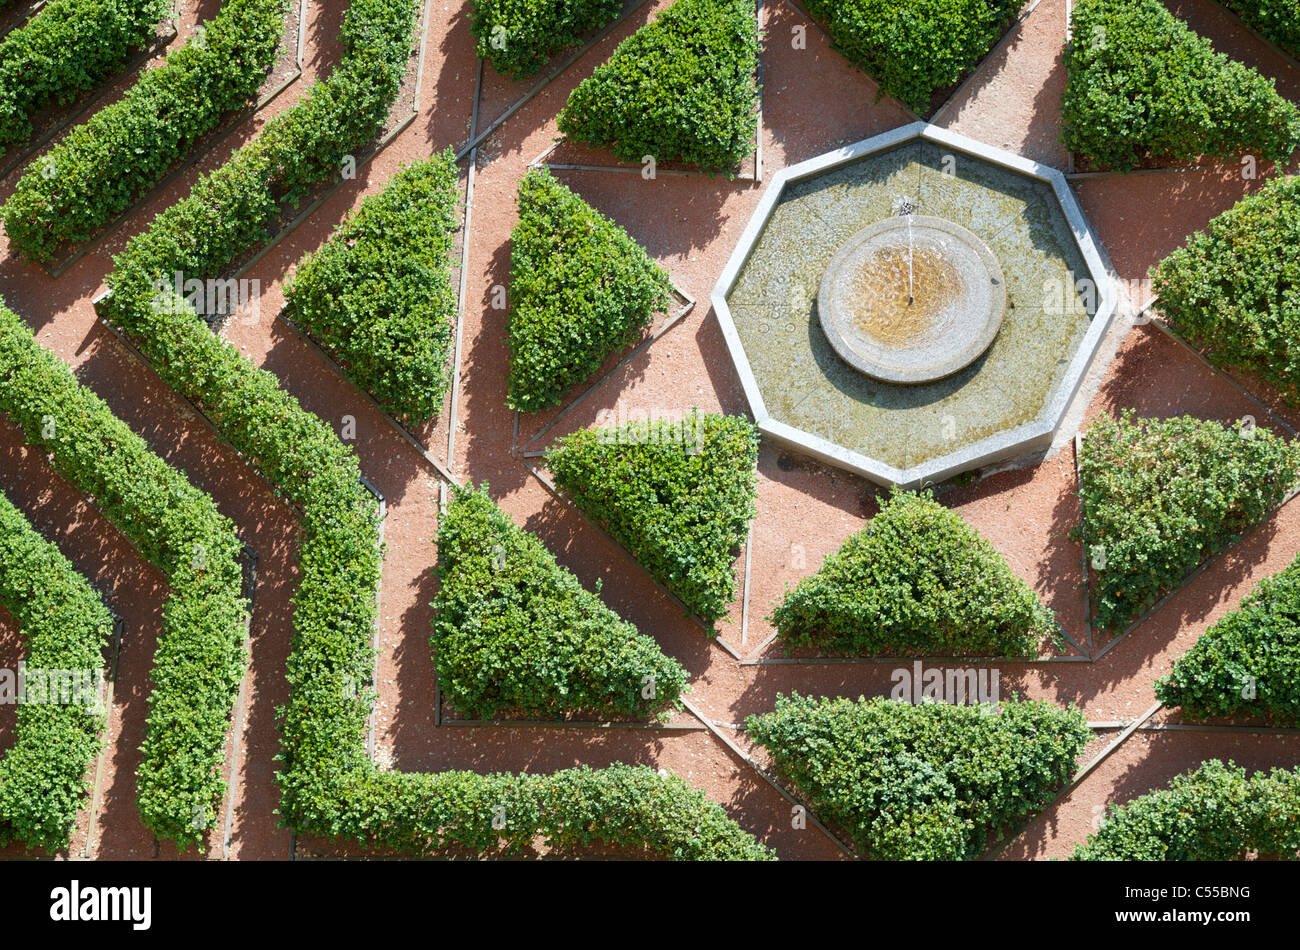 overhead view of a formal garden in the Alcazar of Segovia, Castilla Leon, Spain - Stock Image